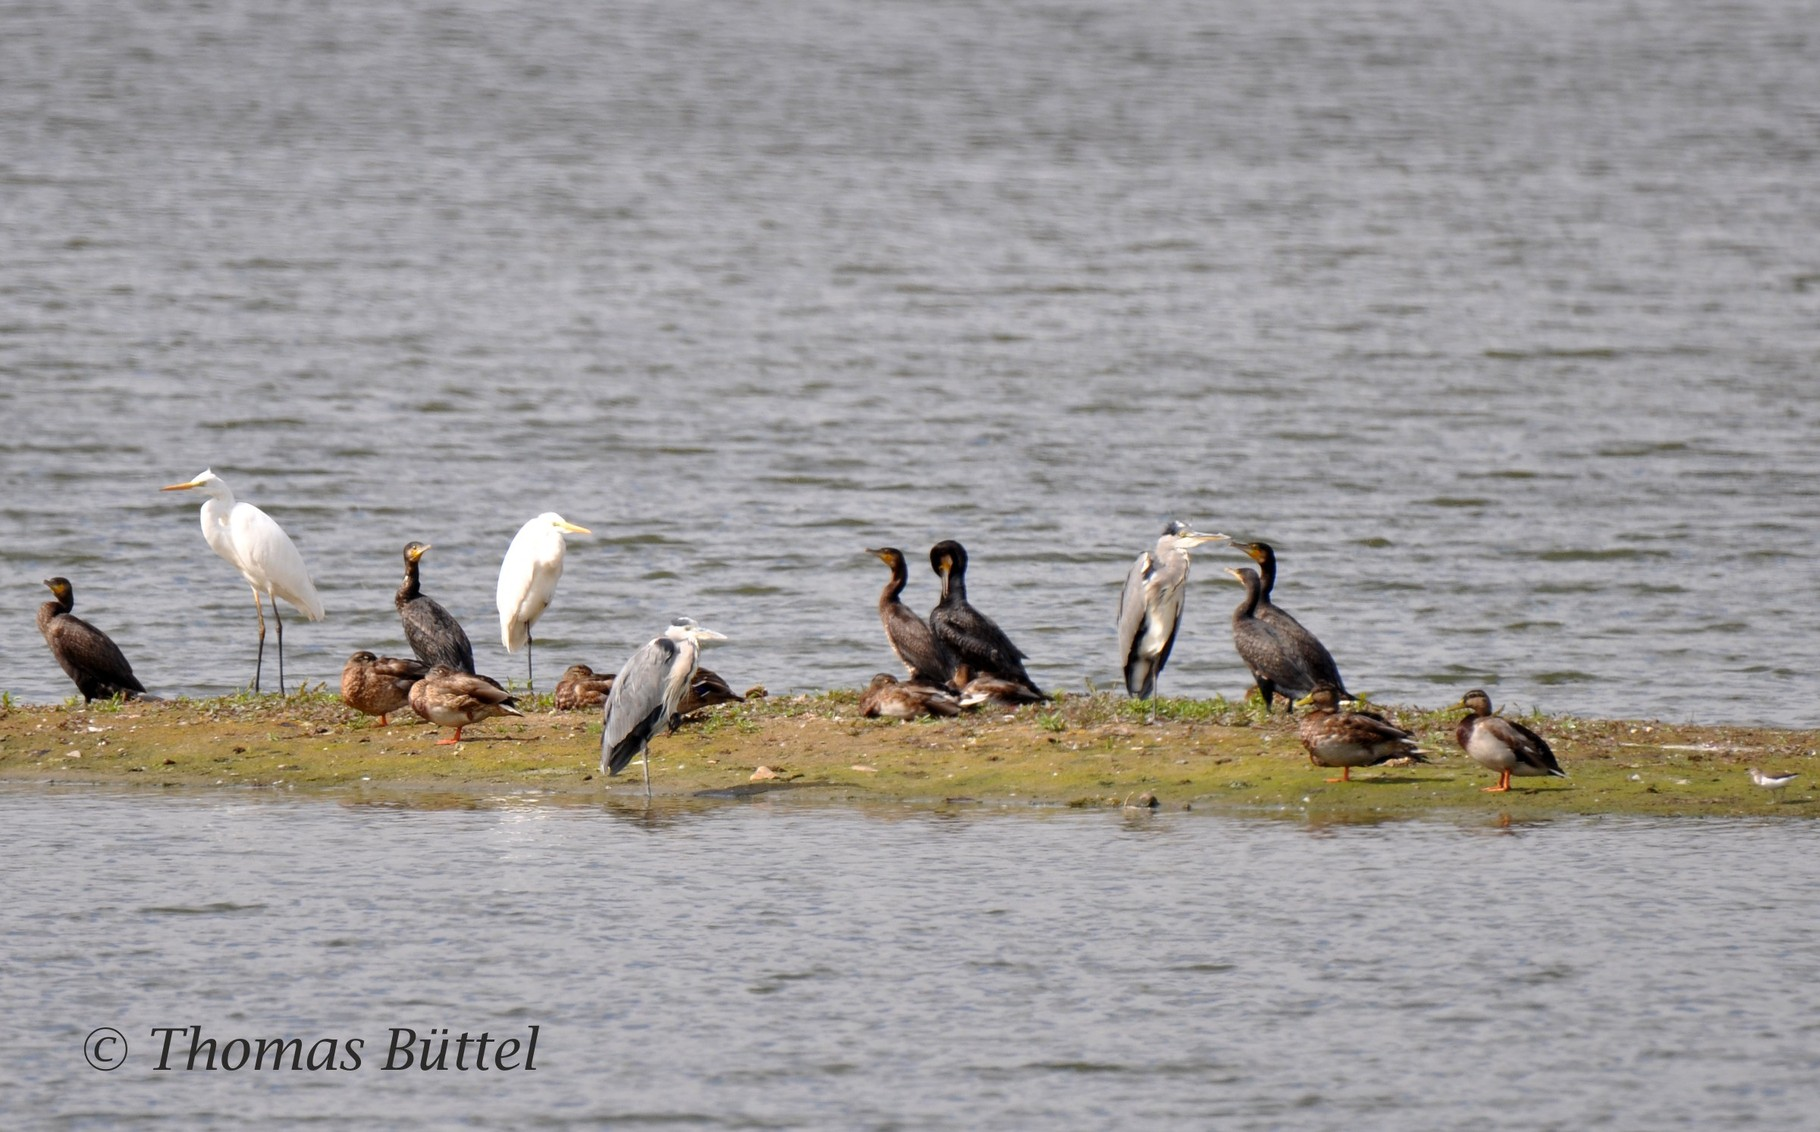 Herons, Cormorants and a Common Sandpiper